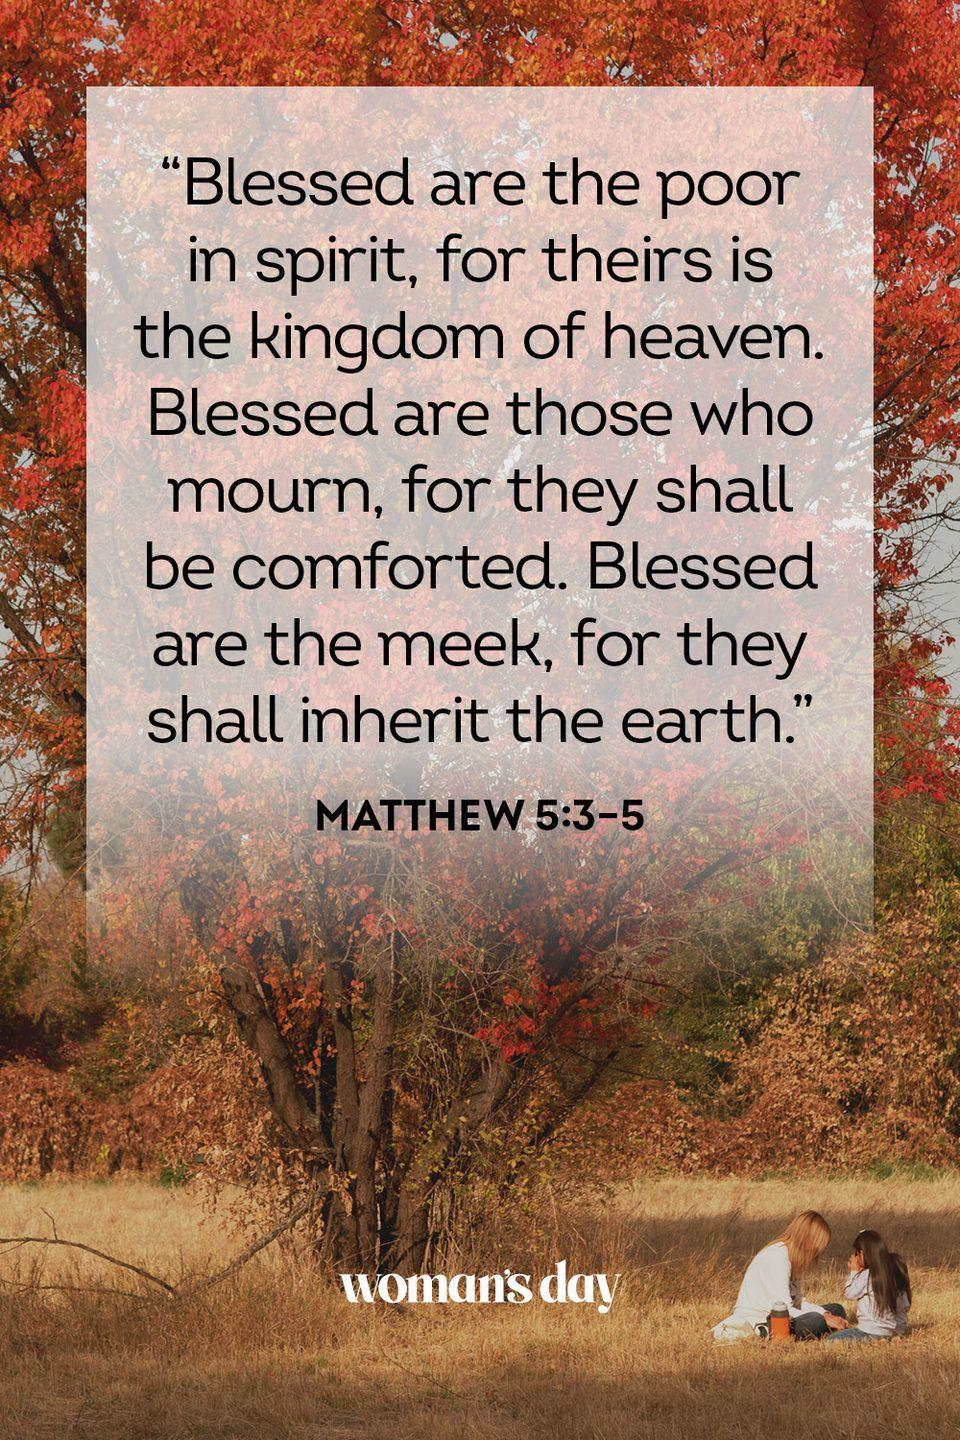 "<p>""Blessed are the poor in spirit, for theirs is the kingdom of heaven. Blessed are those who mourn, for they shall be comforted. Blessed are the meek, for they shall inherit the earth.""</p><p><strong>The Good News: </strong>God's love and mercy transcend and confound the expectations of this world.</p>"